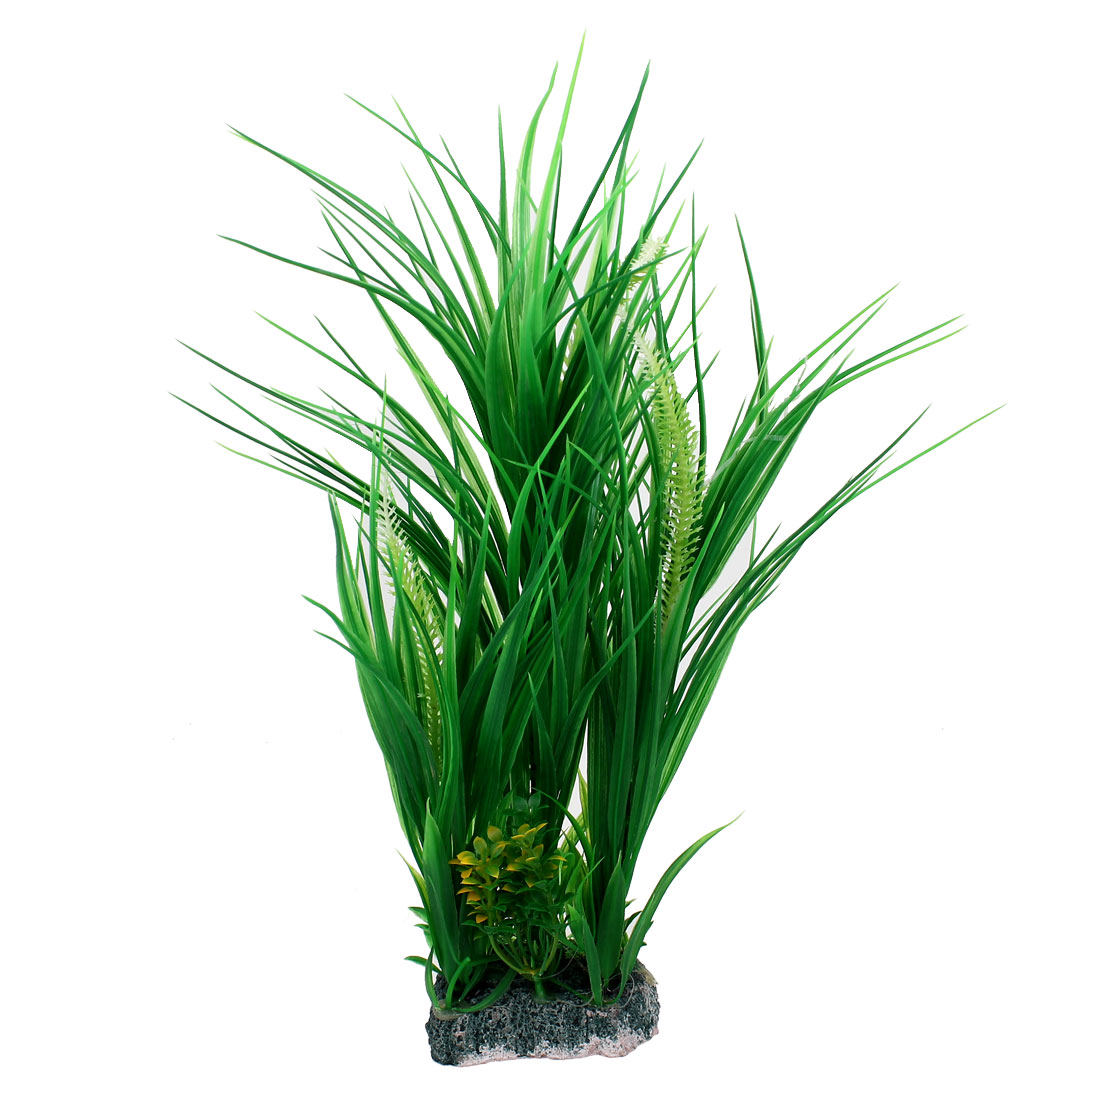 Aquarium Fish Tank Landscaping Manmade Artificial Plastic Aquatic Water Plant Green 40cm High